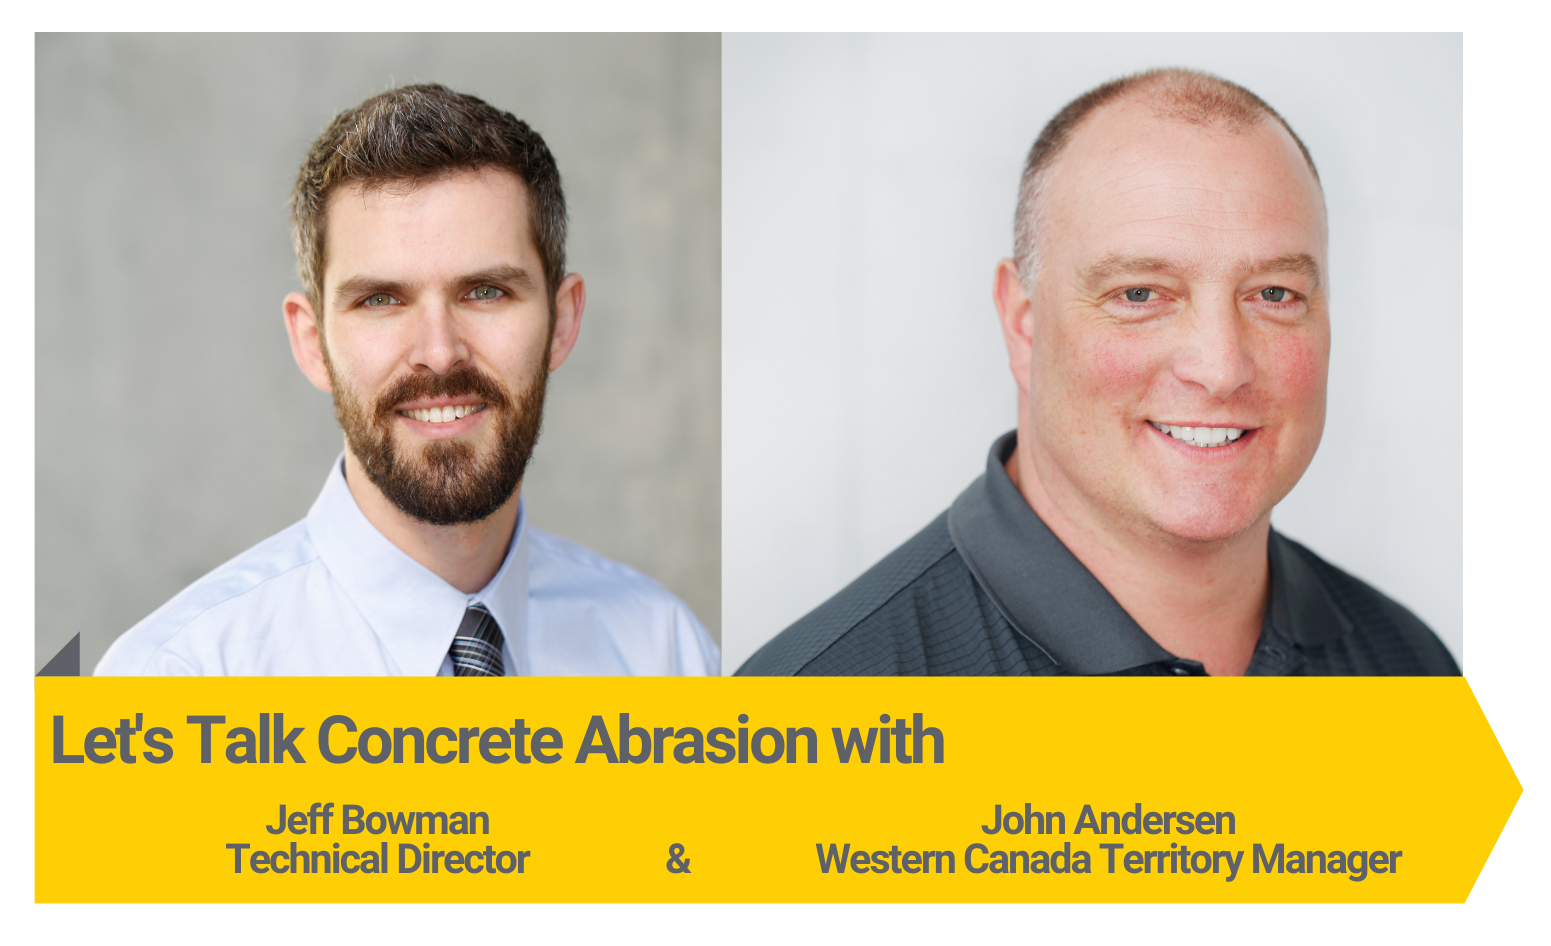 Let's talk concrete abrasion with Technical Director Jeff Bowman and Western Canada Territory Manager John Andersen.